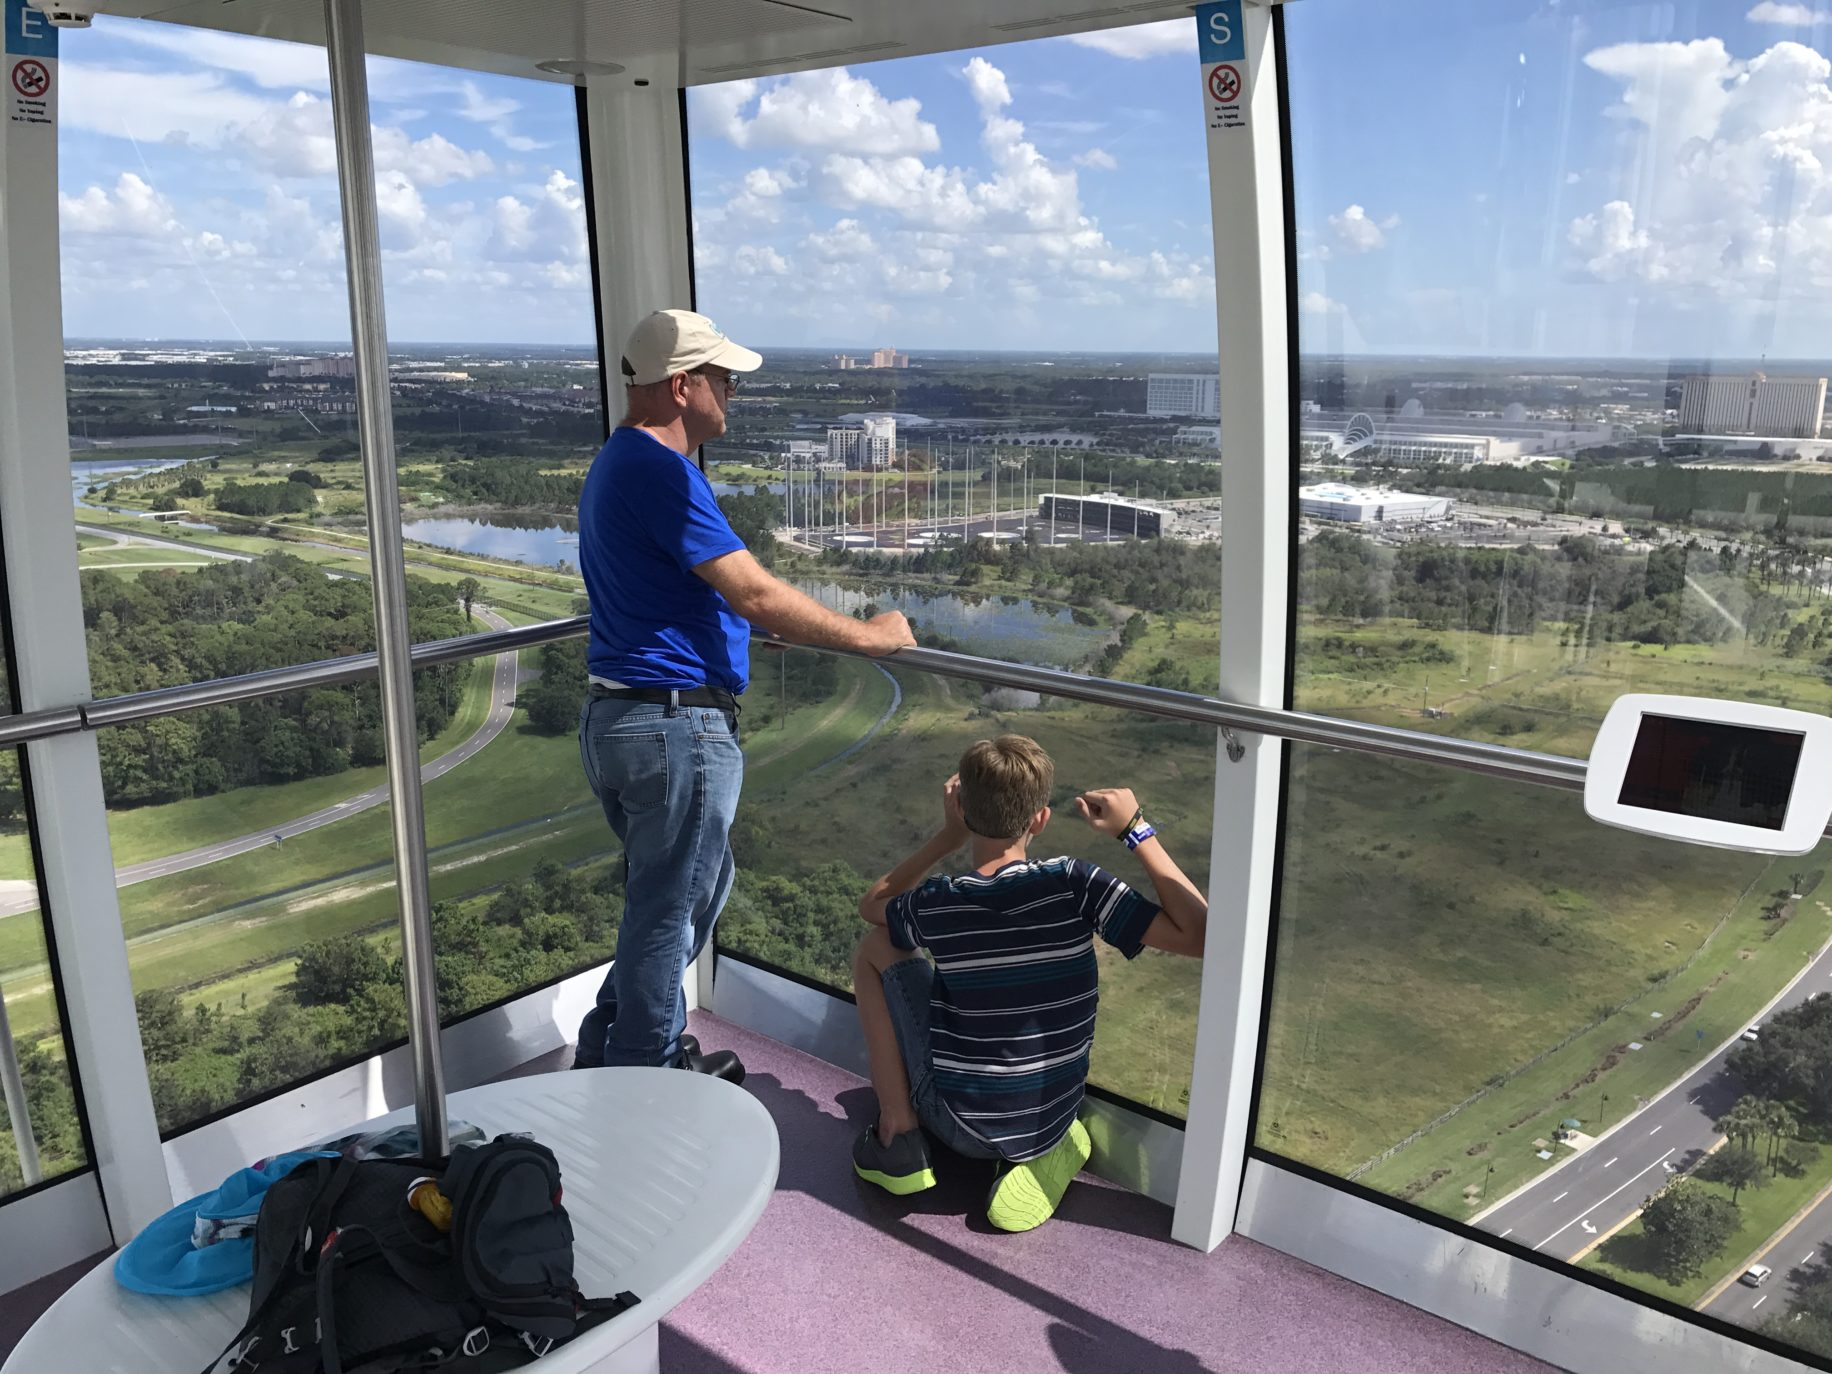 Relax and enjoy the view of the Orlando Eye \ Image: Dakster Sullivan